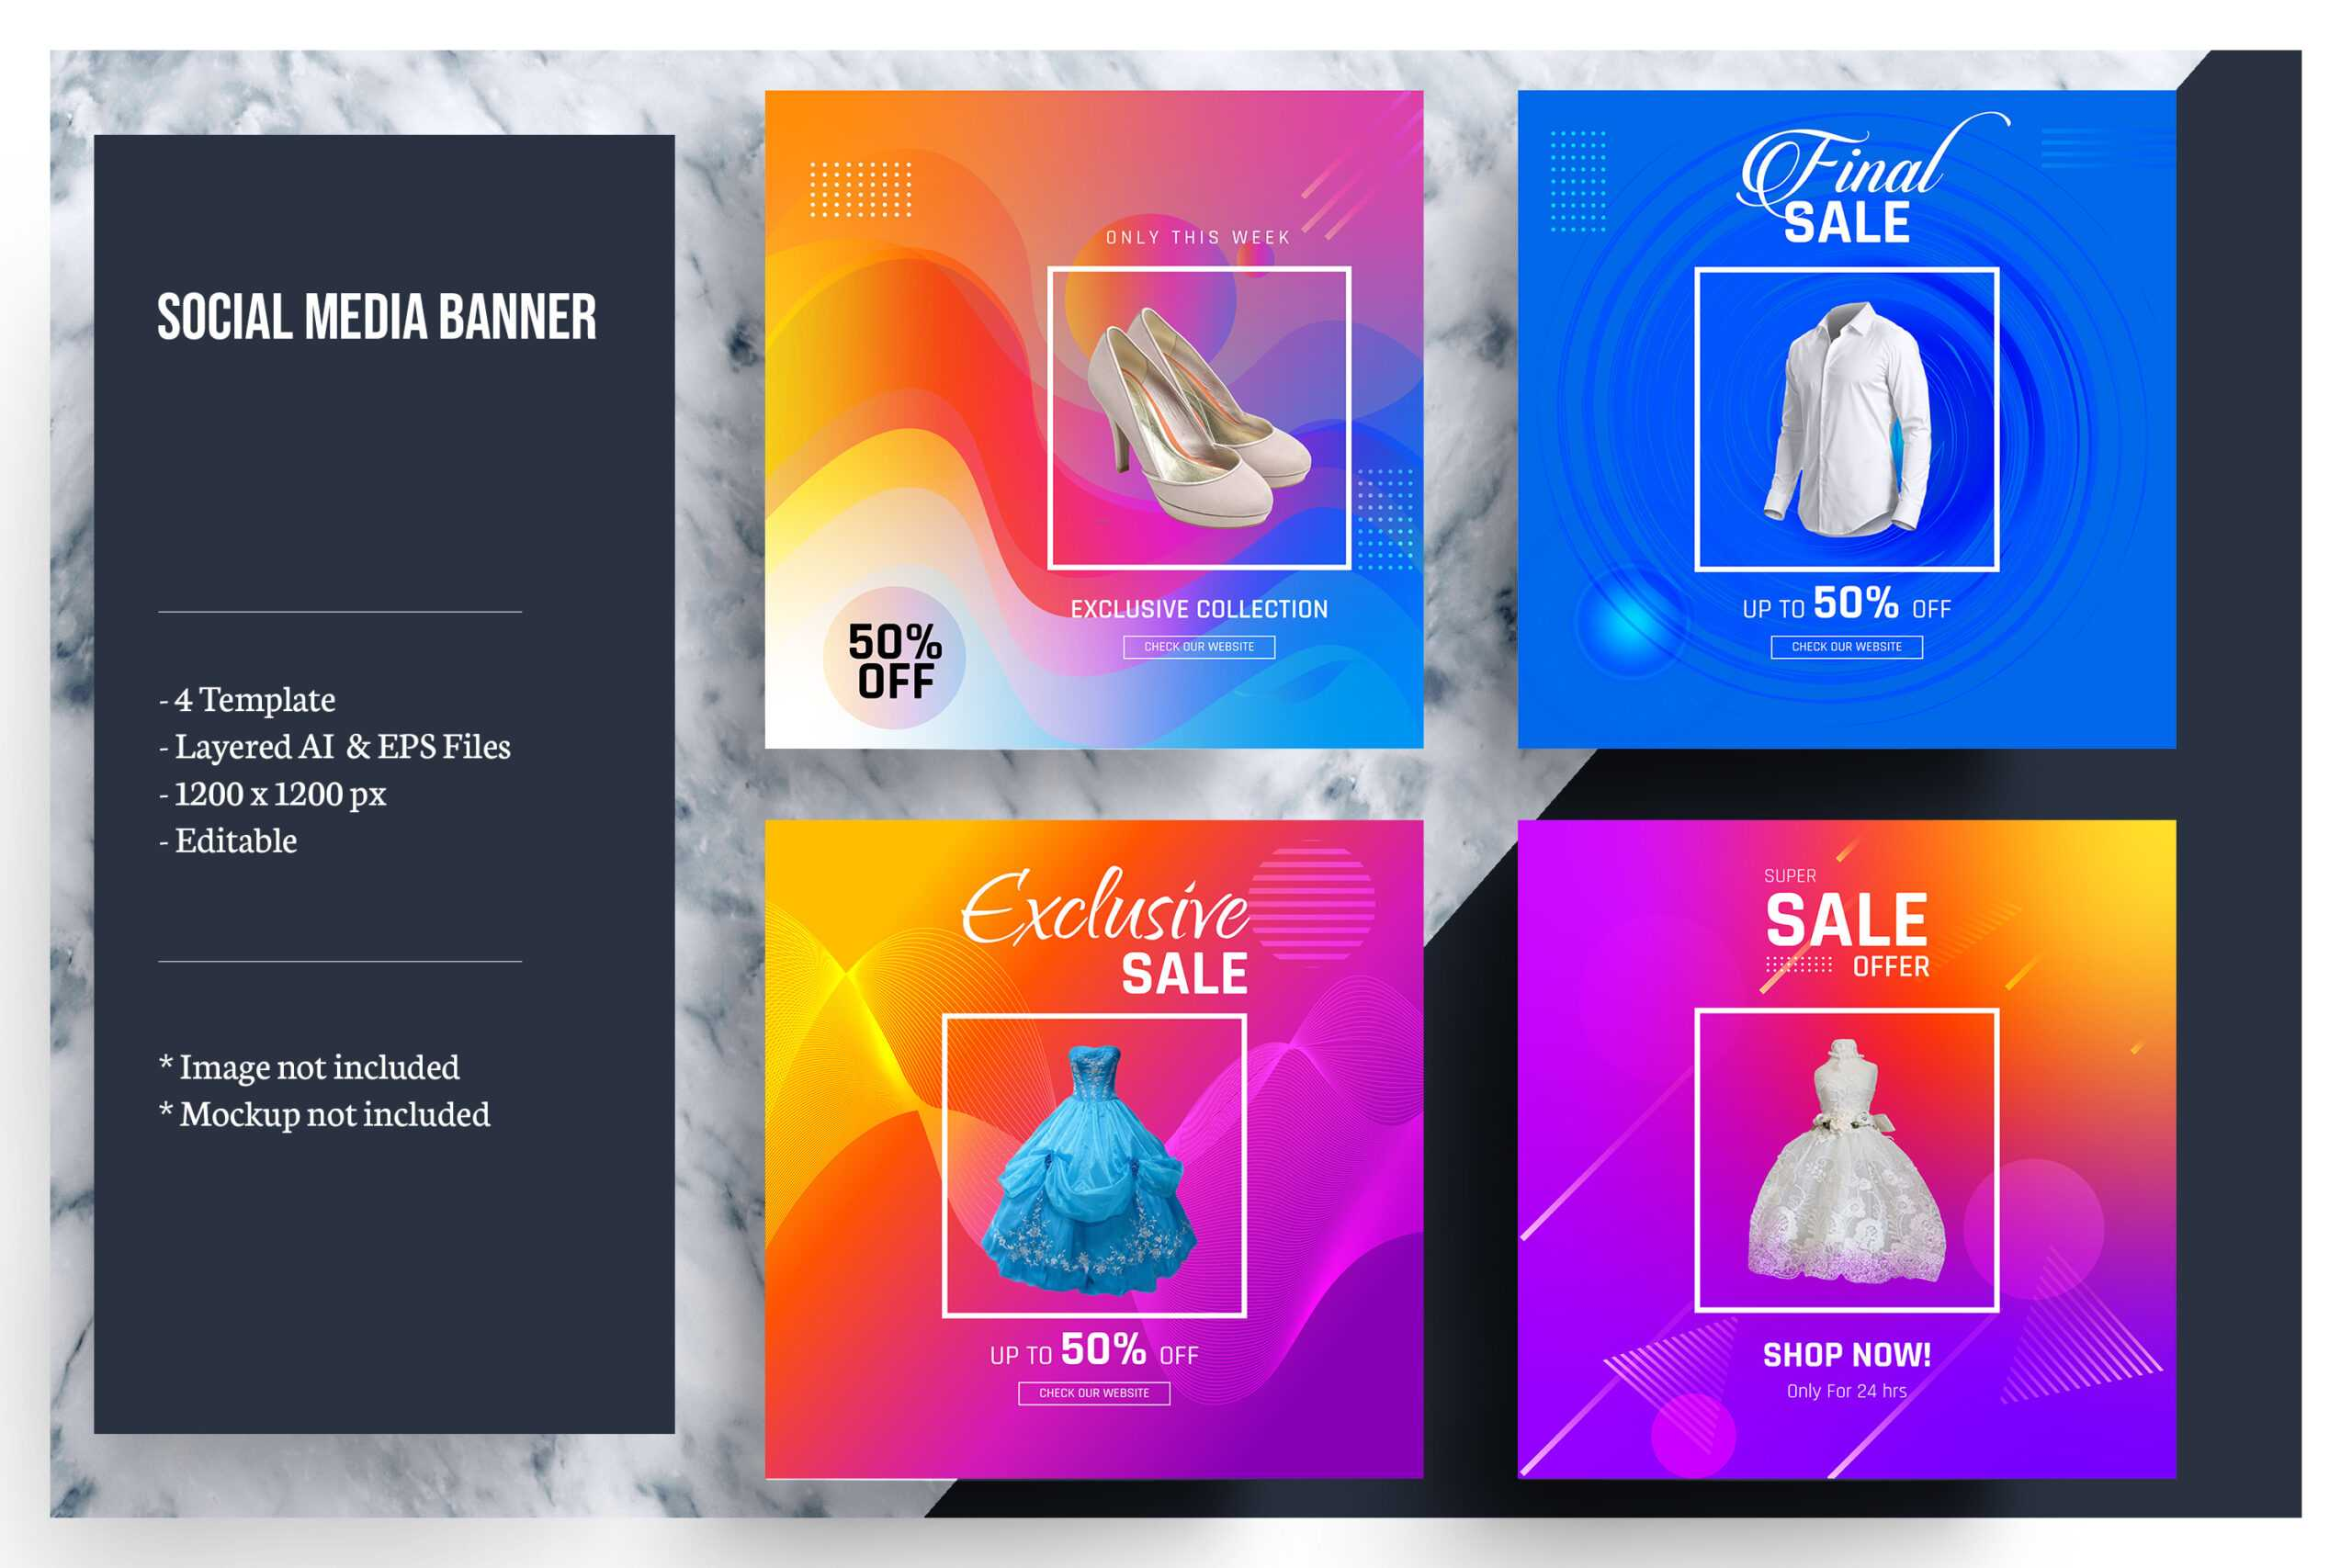 Colorful Social Media Banner Template With Product Banner Template